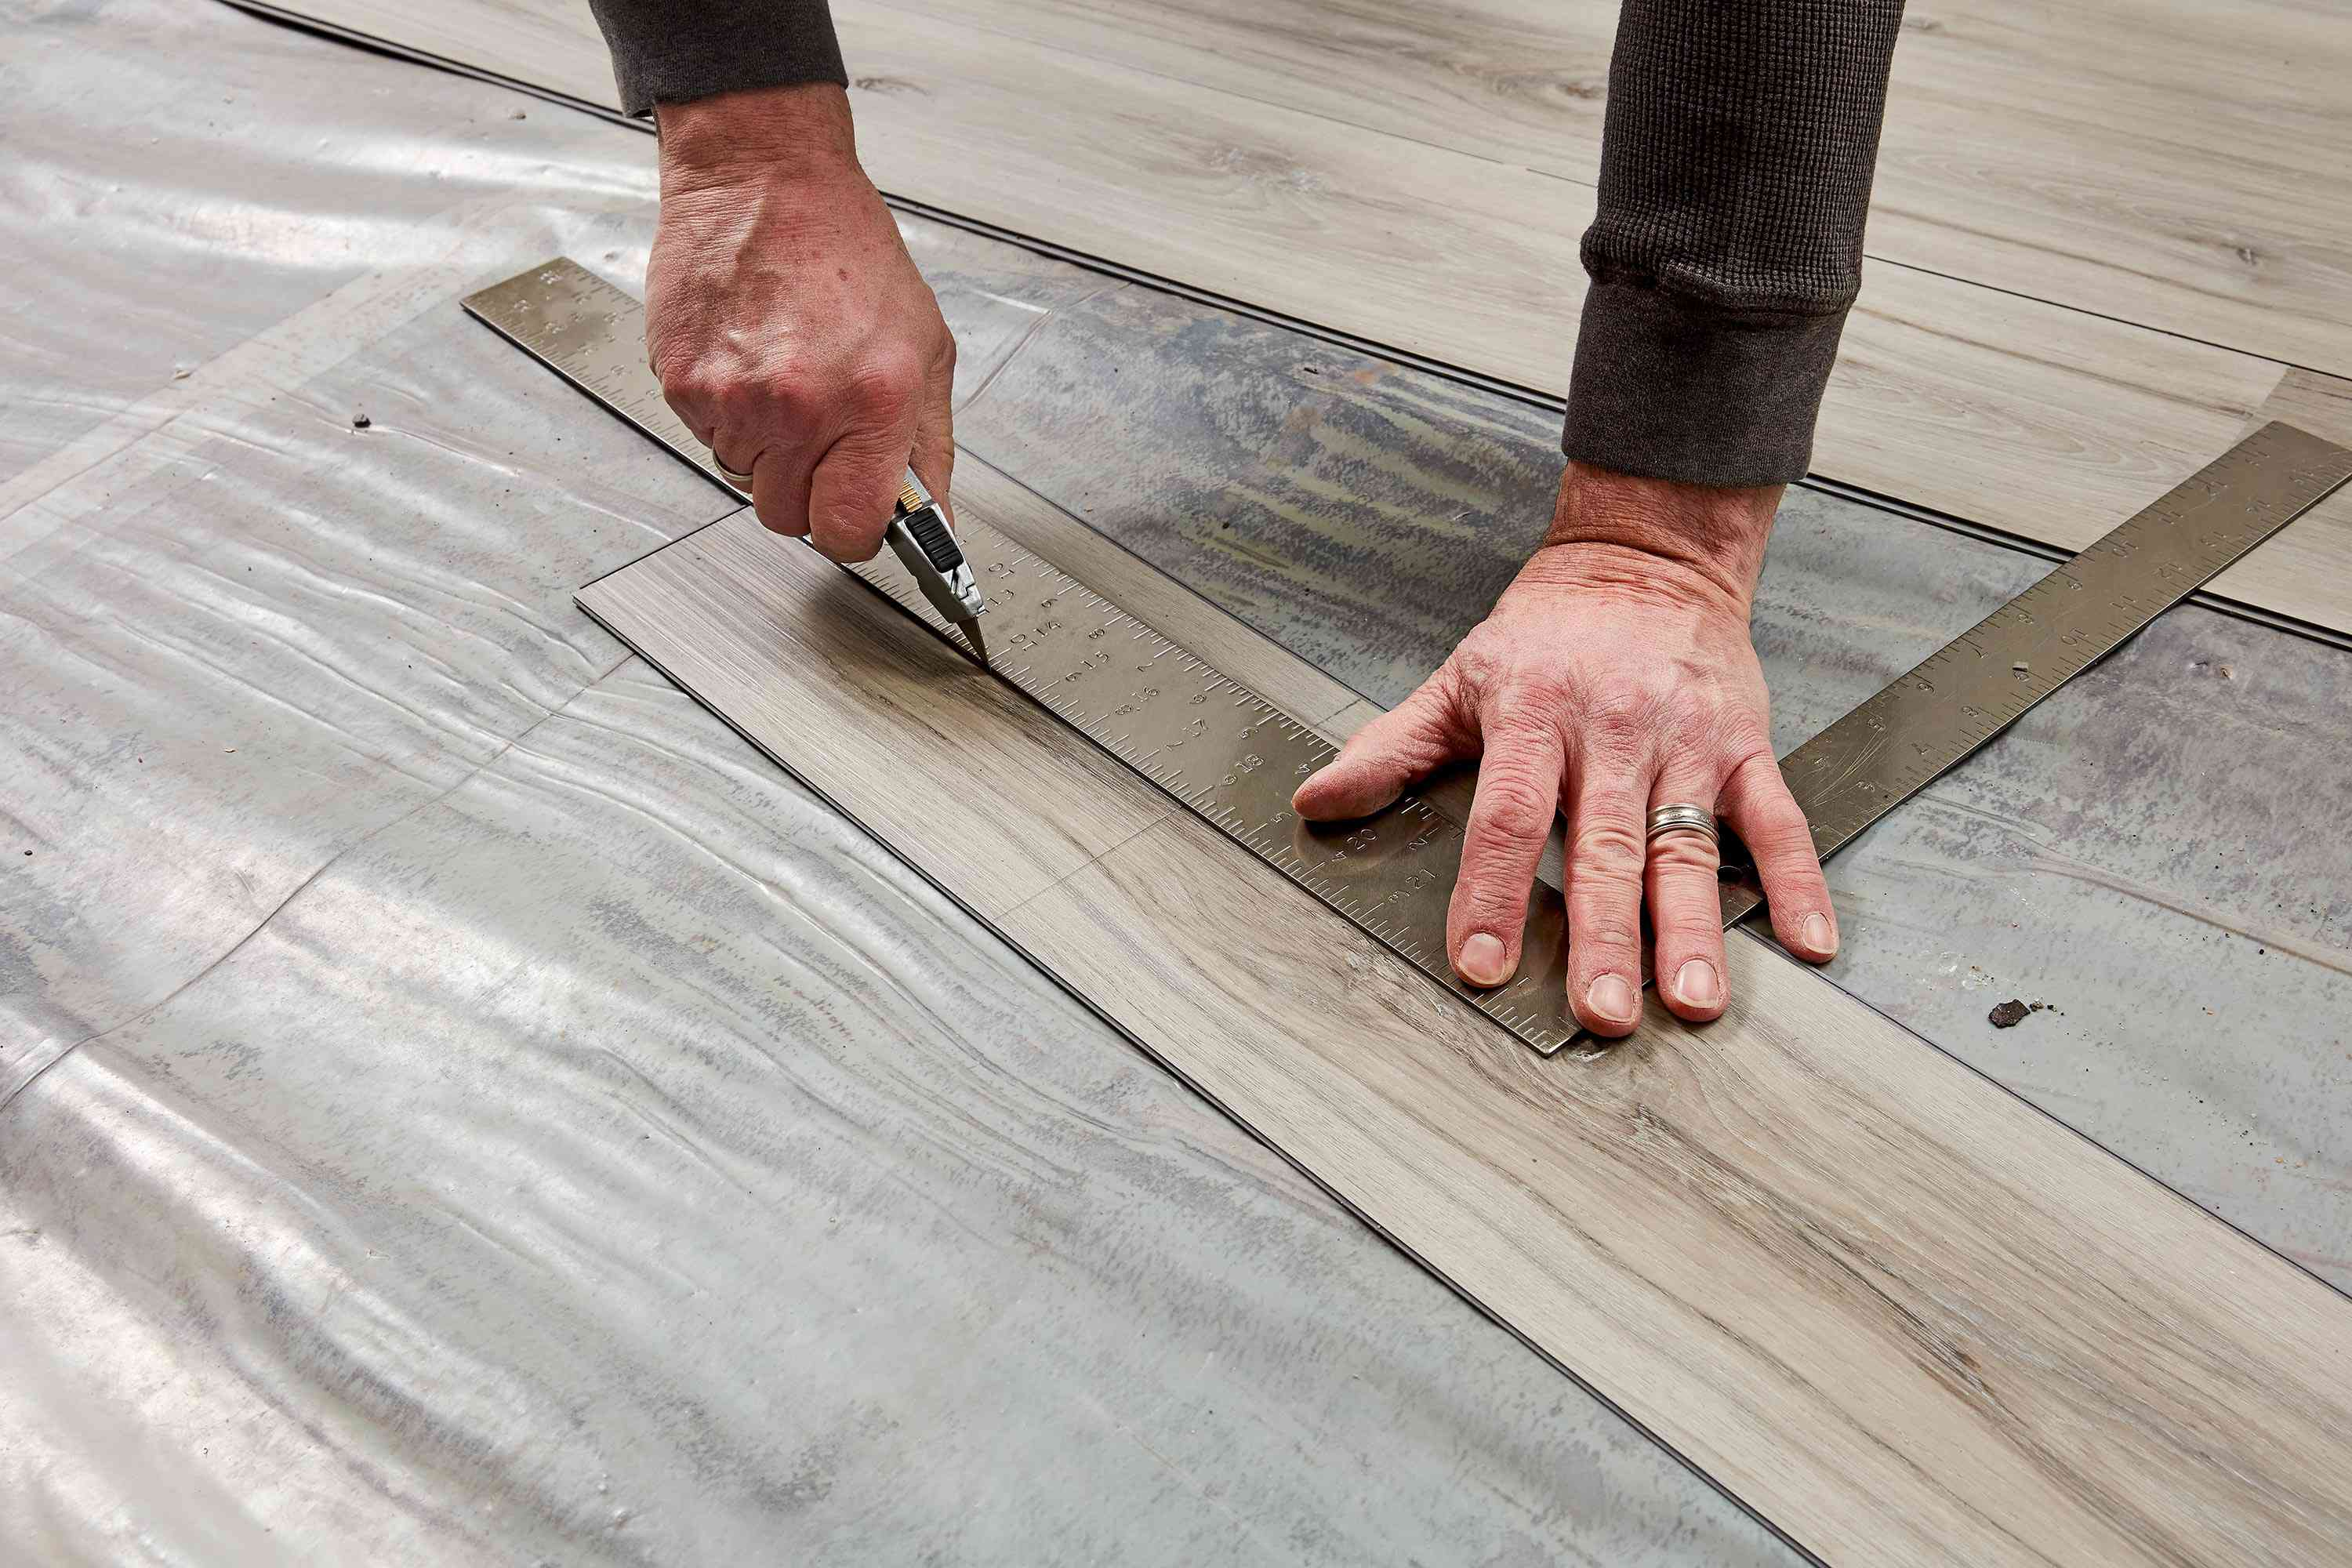 Vinyl plank measured and cut by utility knife